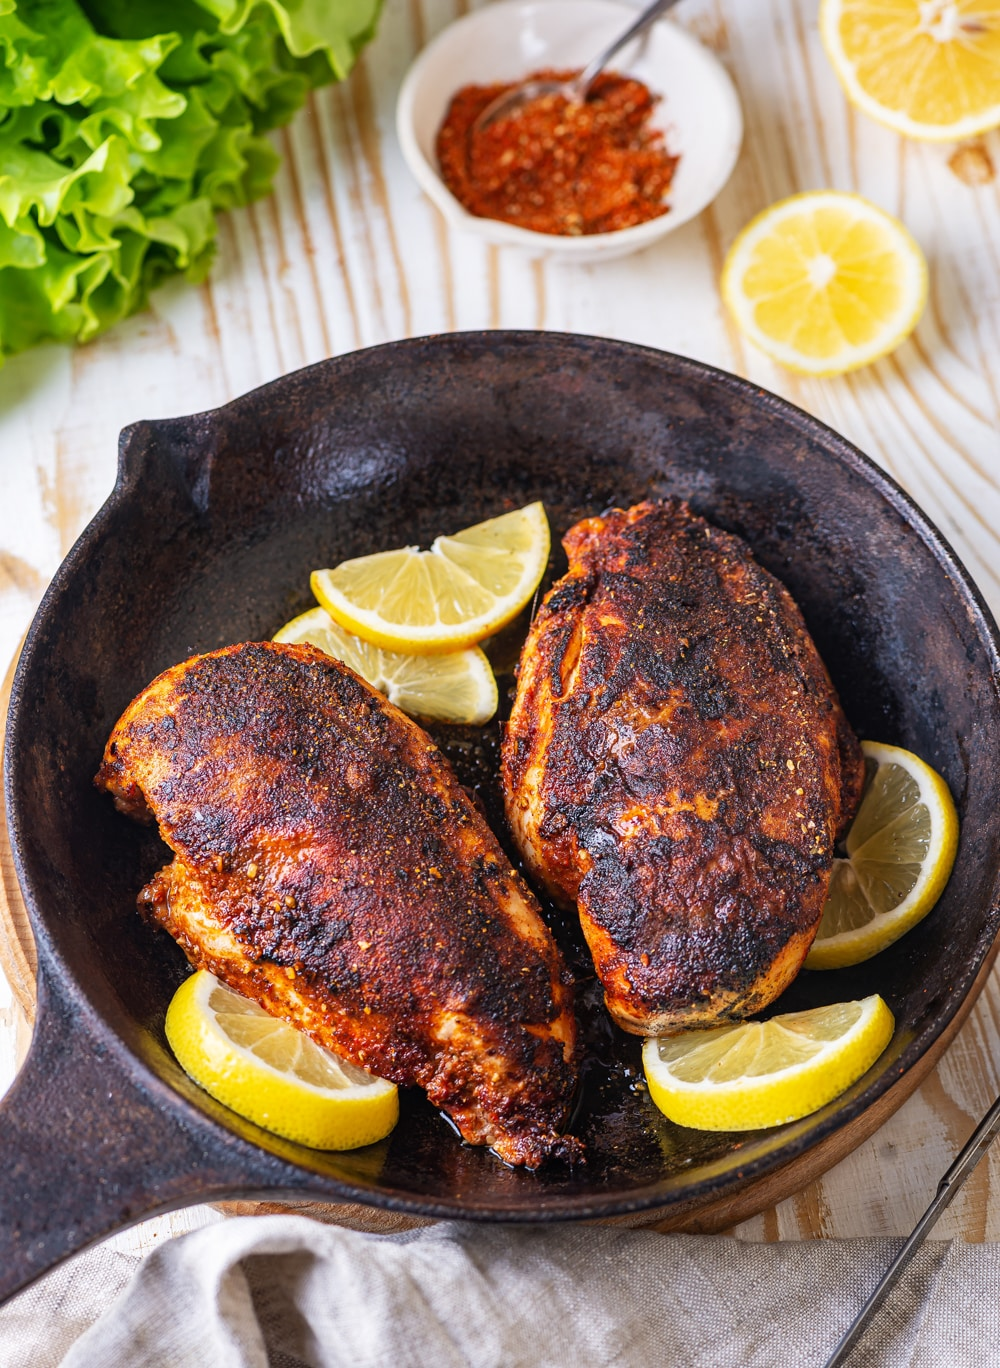 Two whole pieces of cooked blackened chicken in a skillet. Five sliced lemons are surrounding the chicken. A small white bowl of seasonings is set behind the skillet with two lemon halves next to it. Everything is on a wooden table.